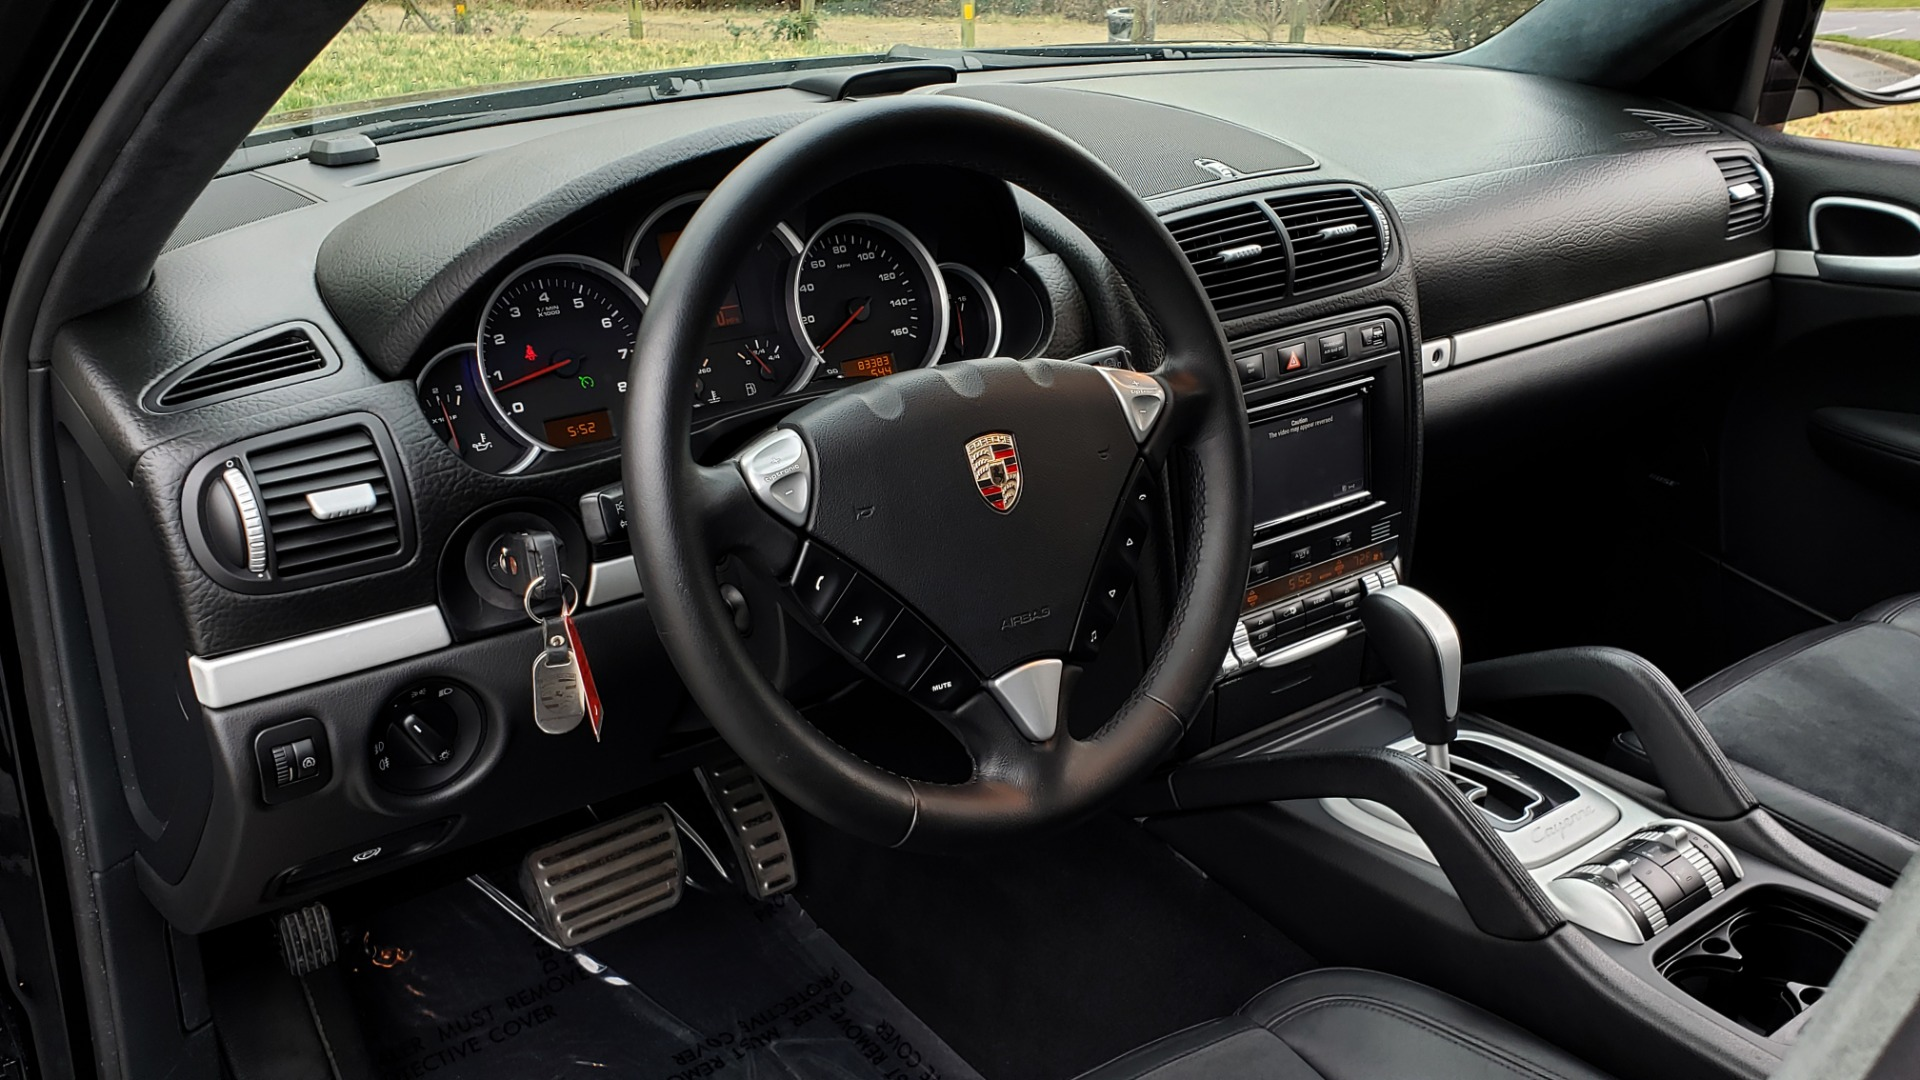 Used 2008 Porsche CAYENNE GTS TIPTRONIC / NAV / SUNROOF / REARVIEW / BOSE for sale Sold at Formula Imports in Charlotte NC 28227 48